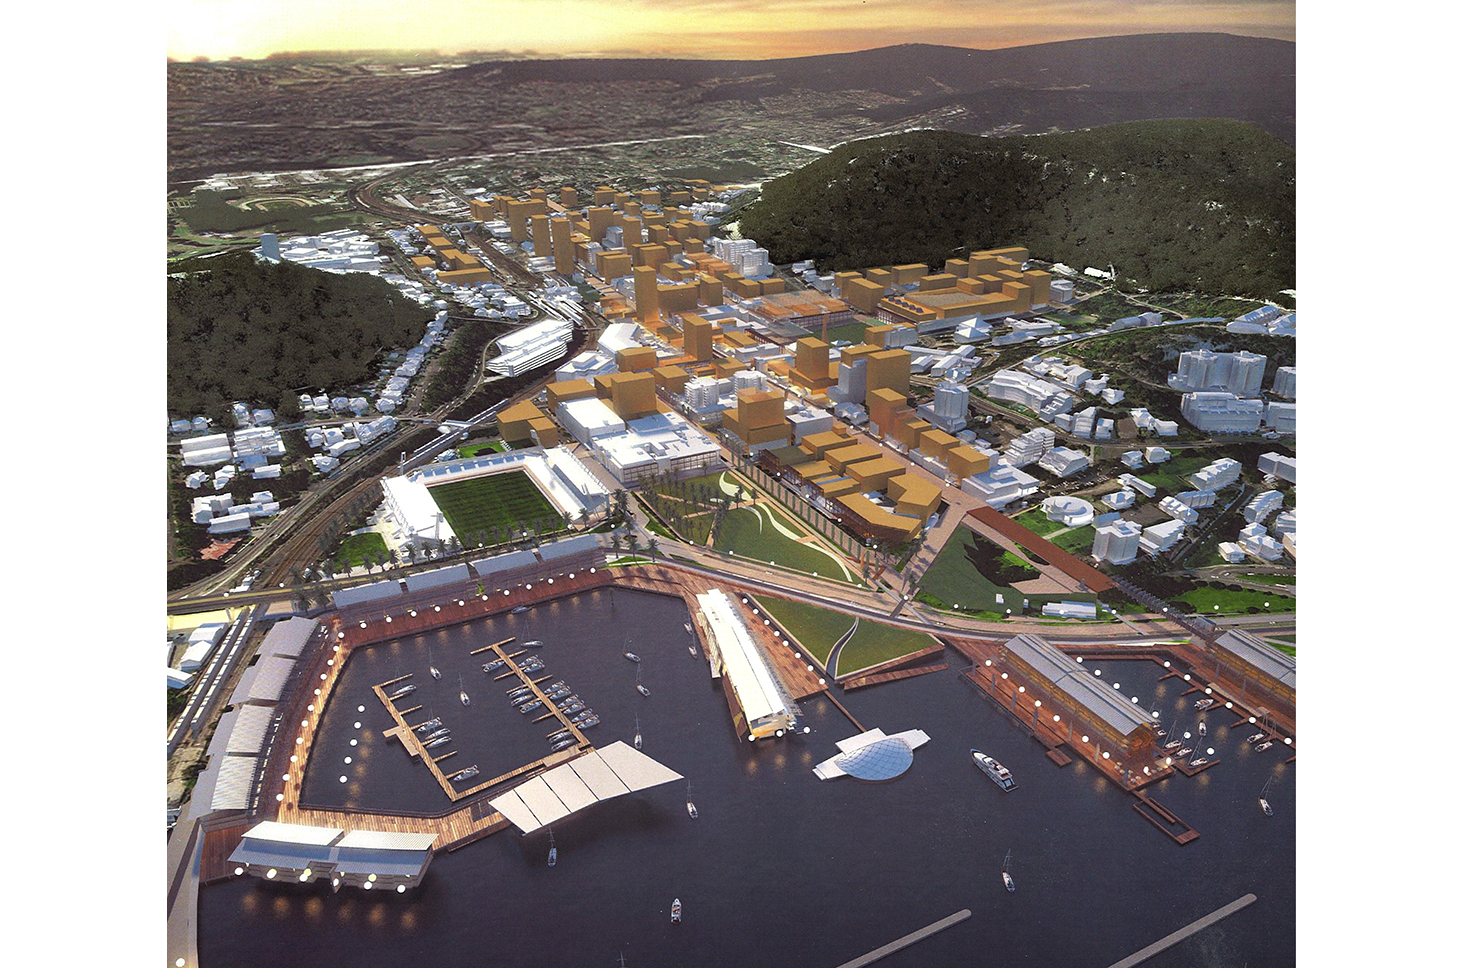 Gosford_aerial rendering_resized with transparent background